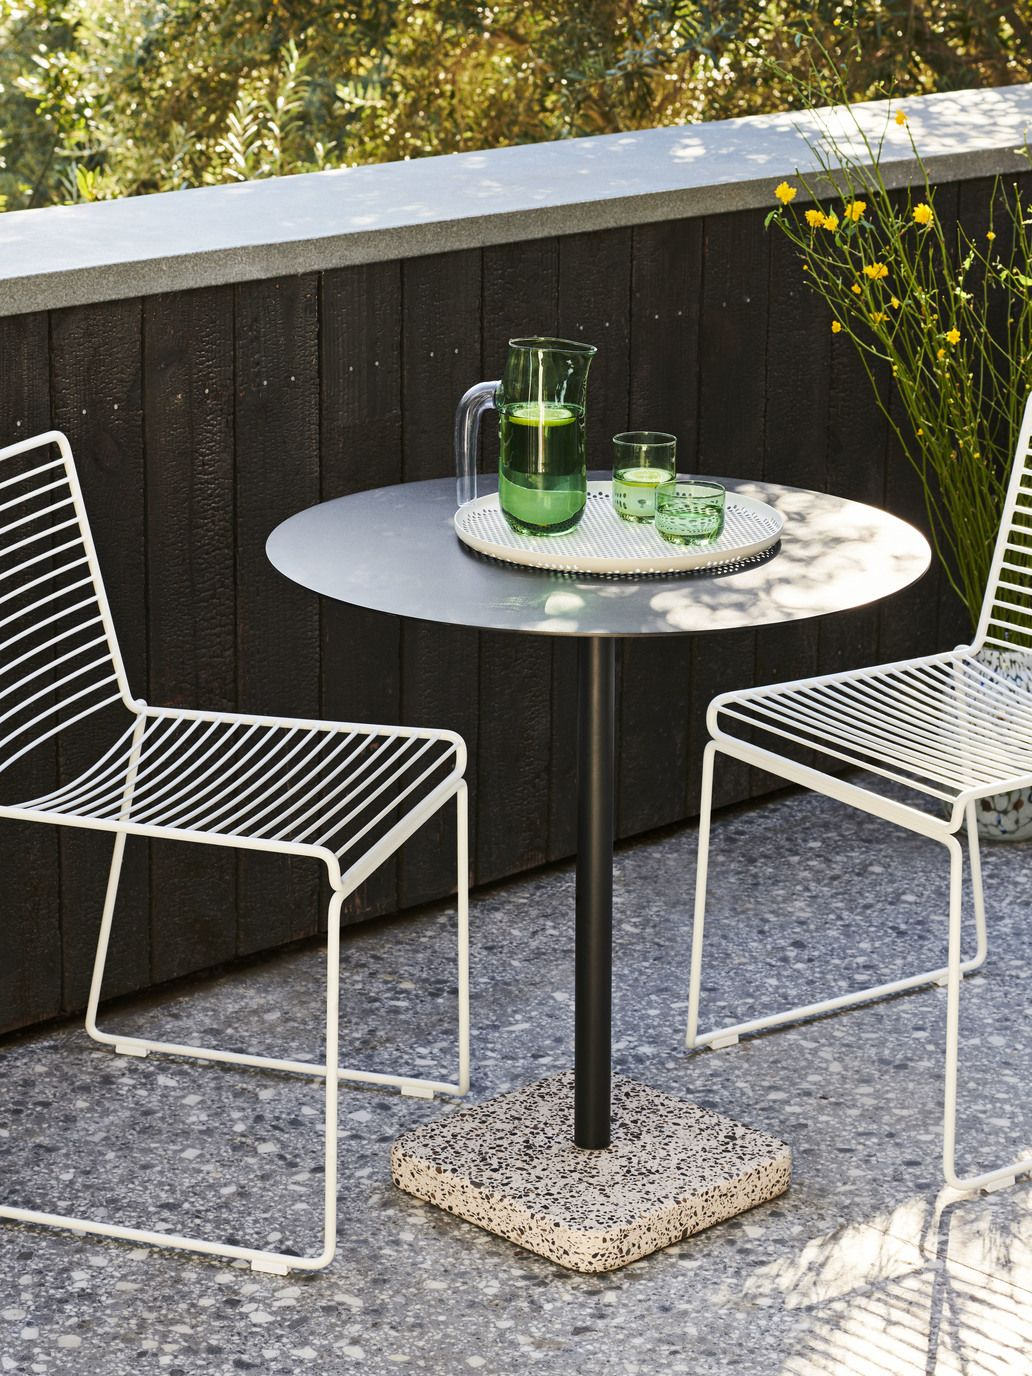 Hay Hee Dining Chair White Outdoor Chairs Design Outdoor Furniture Ideas Backyards Outdoor Dining Chairs